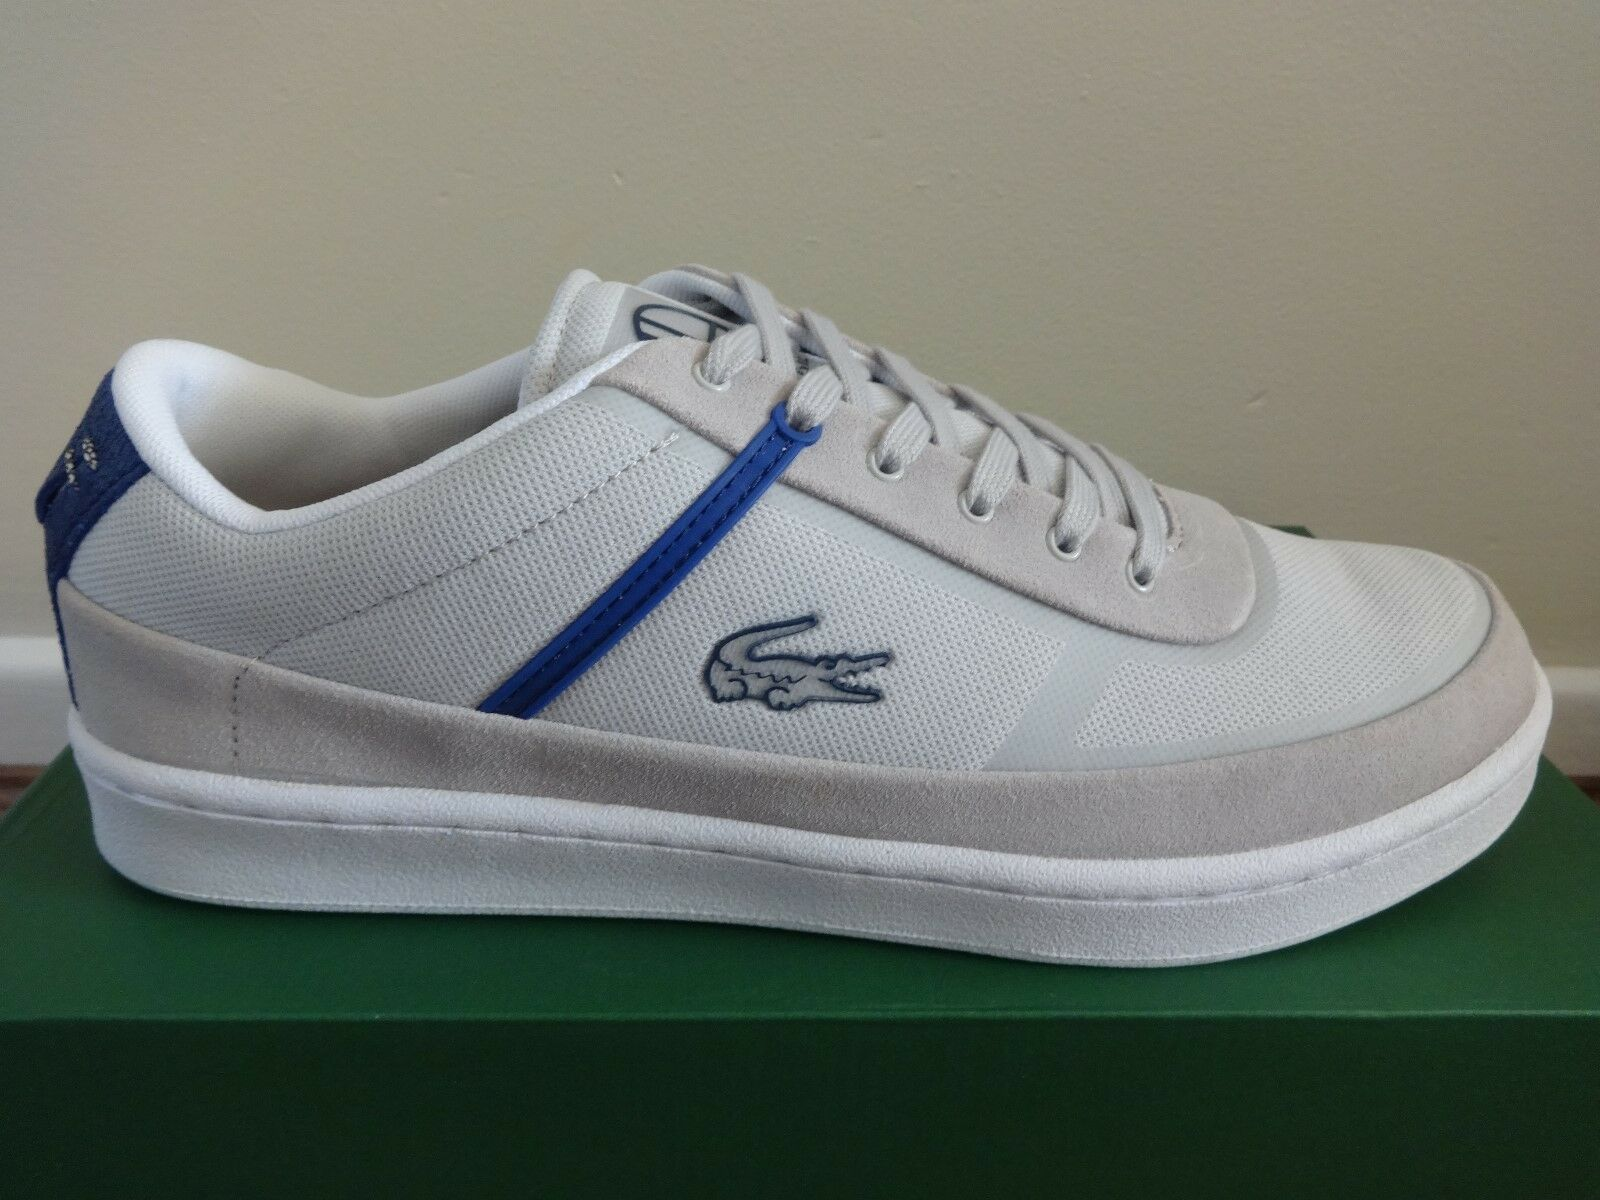 Lacoste Sport Court Line NWP SPM LT mens trainers sneakers shoes NEW+BOX